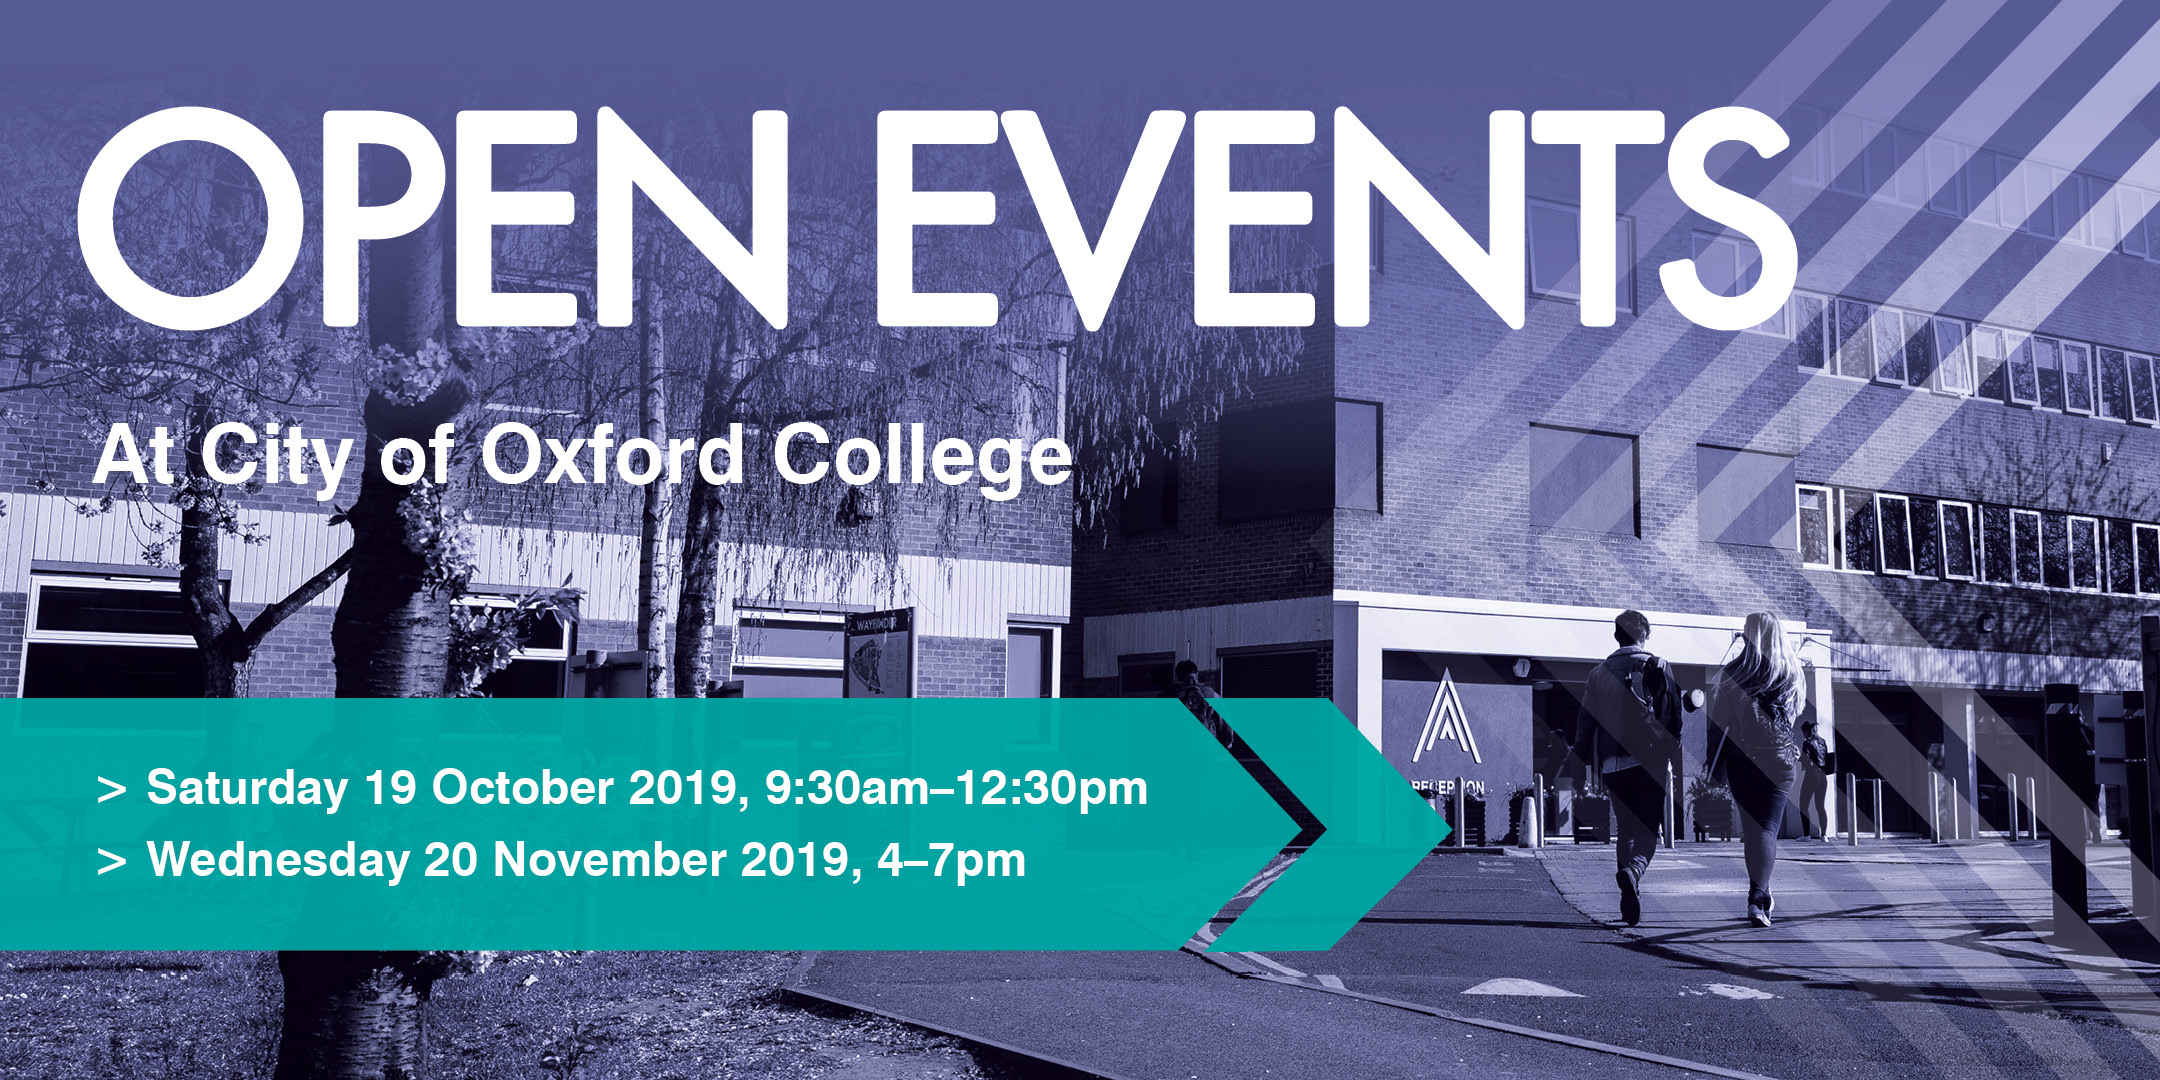 City of Oxford College Open Event